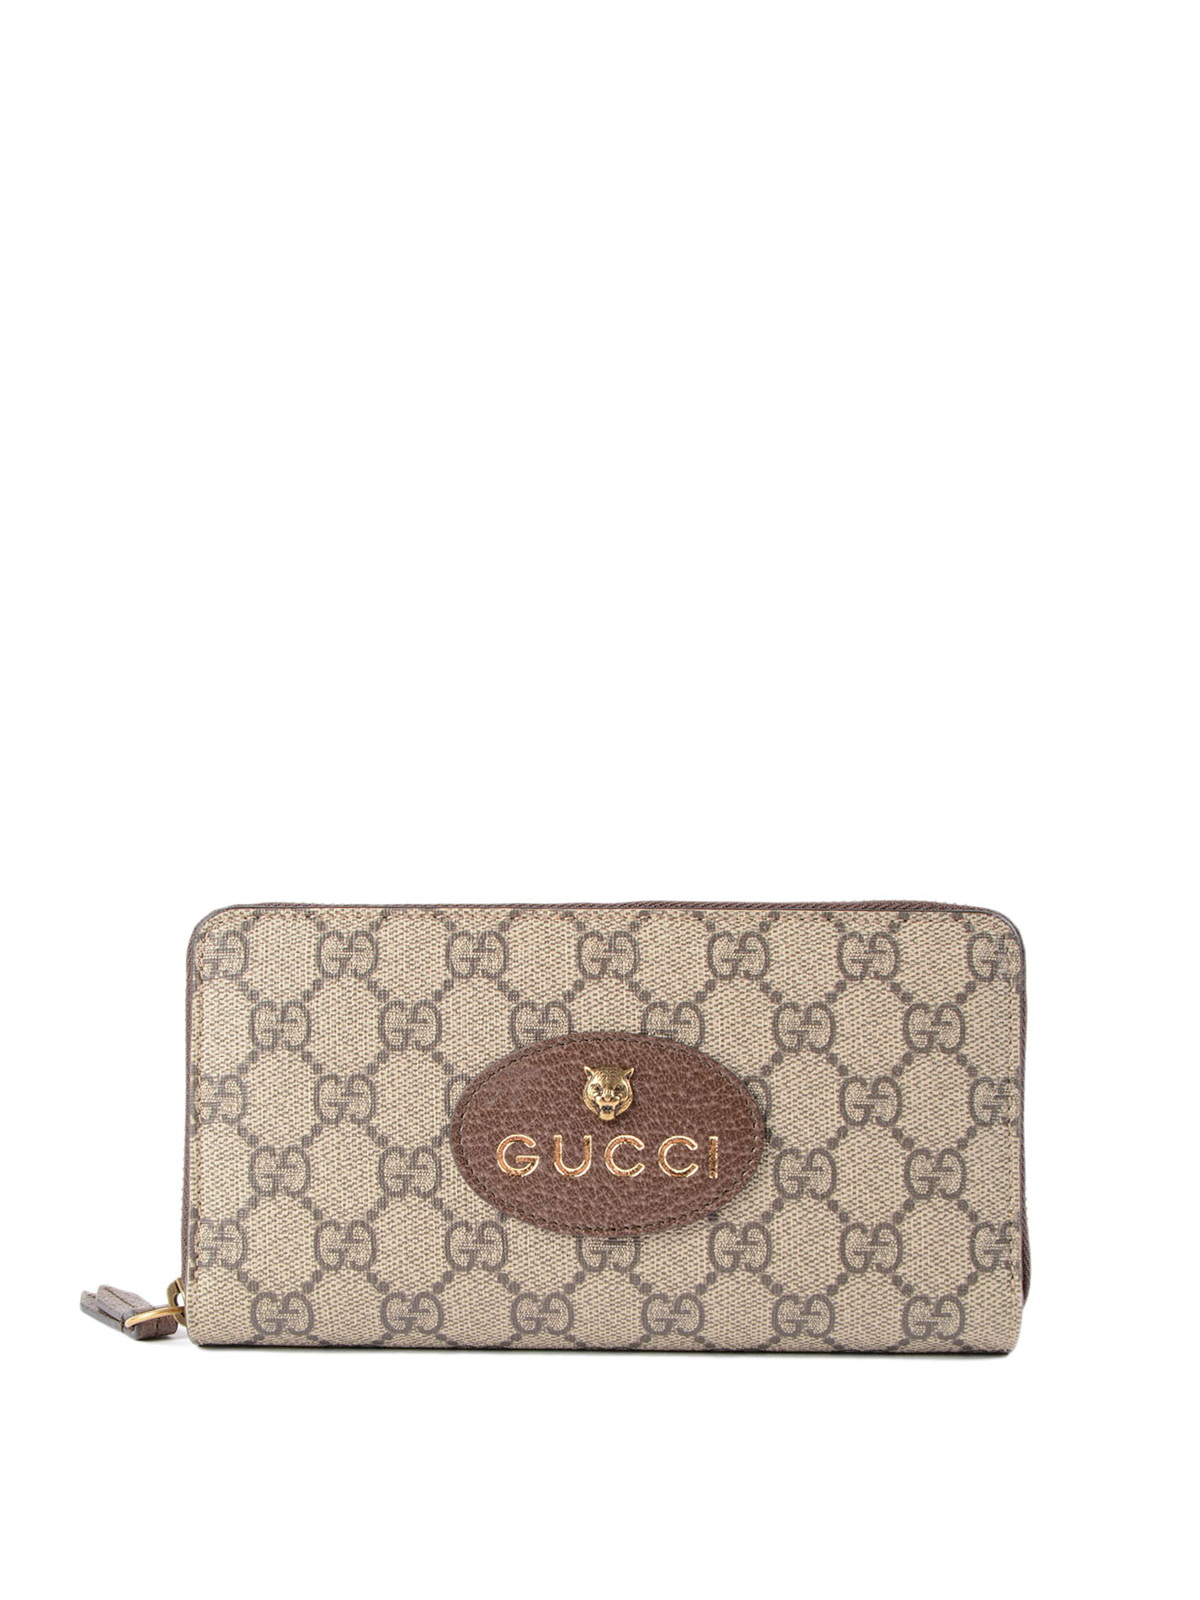 64766fac2b9b90 Gucci Gg Supreme Round Zip Wallet 506279 | Stanford Center for ...